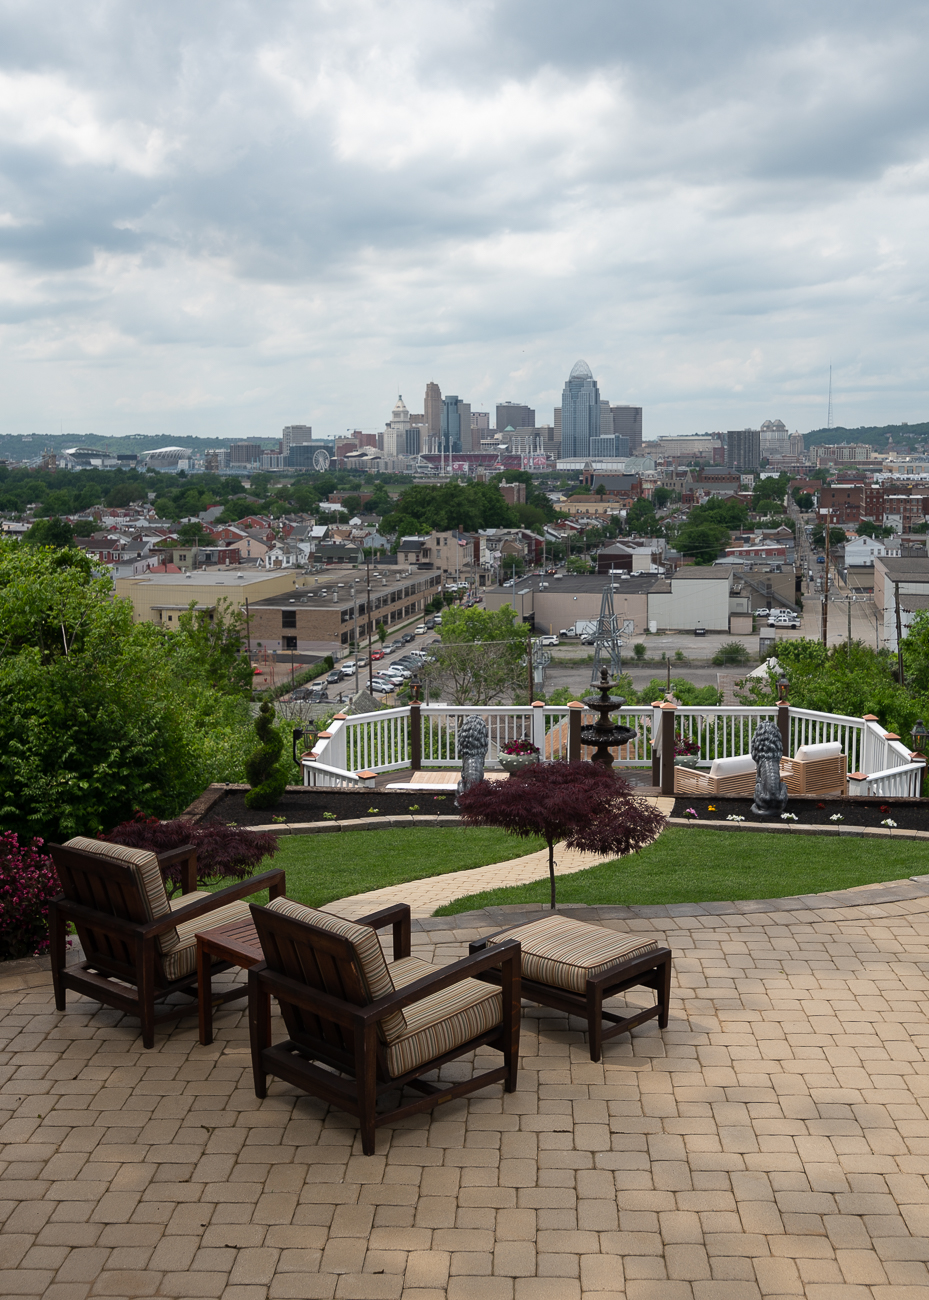 There are three tiers to David's backyard: the first deck just off the kitchen, a patio below it, and another deck below the patio. Each has its own water and fire feature with a panoramic view of everything from west Covington to East Walnut Hills. / Image: Phil Armstrong, Cincinnati Refined // Published: 5.31.19